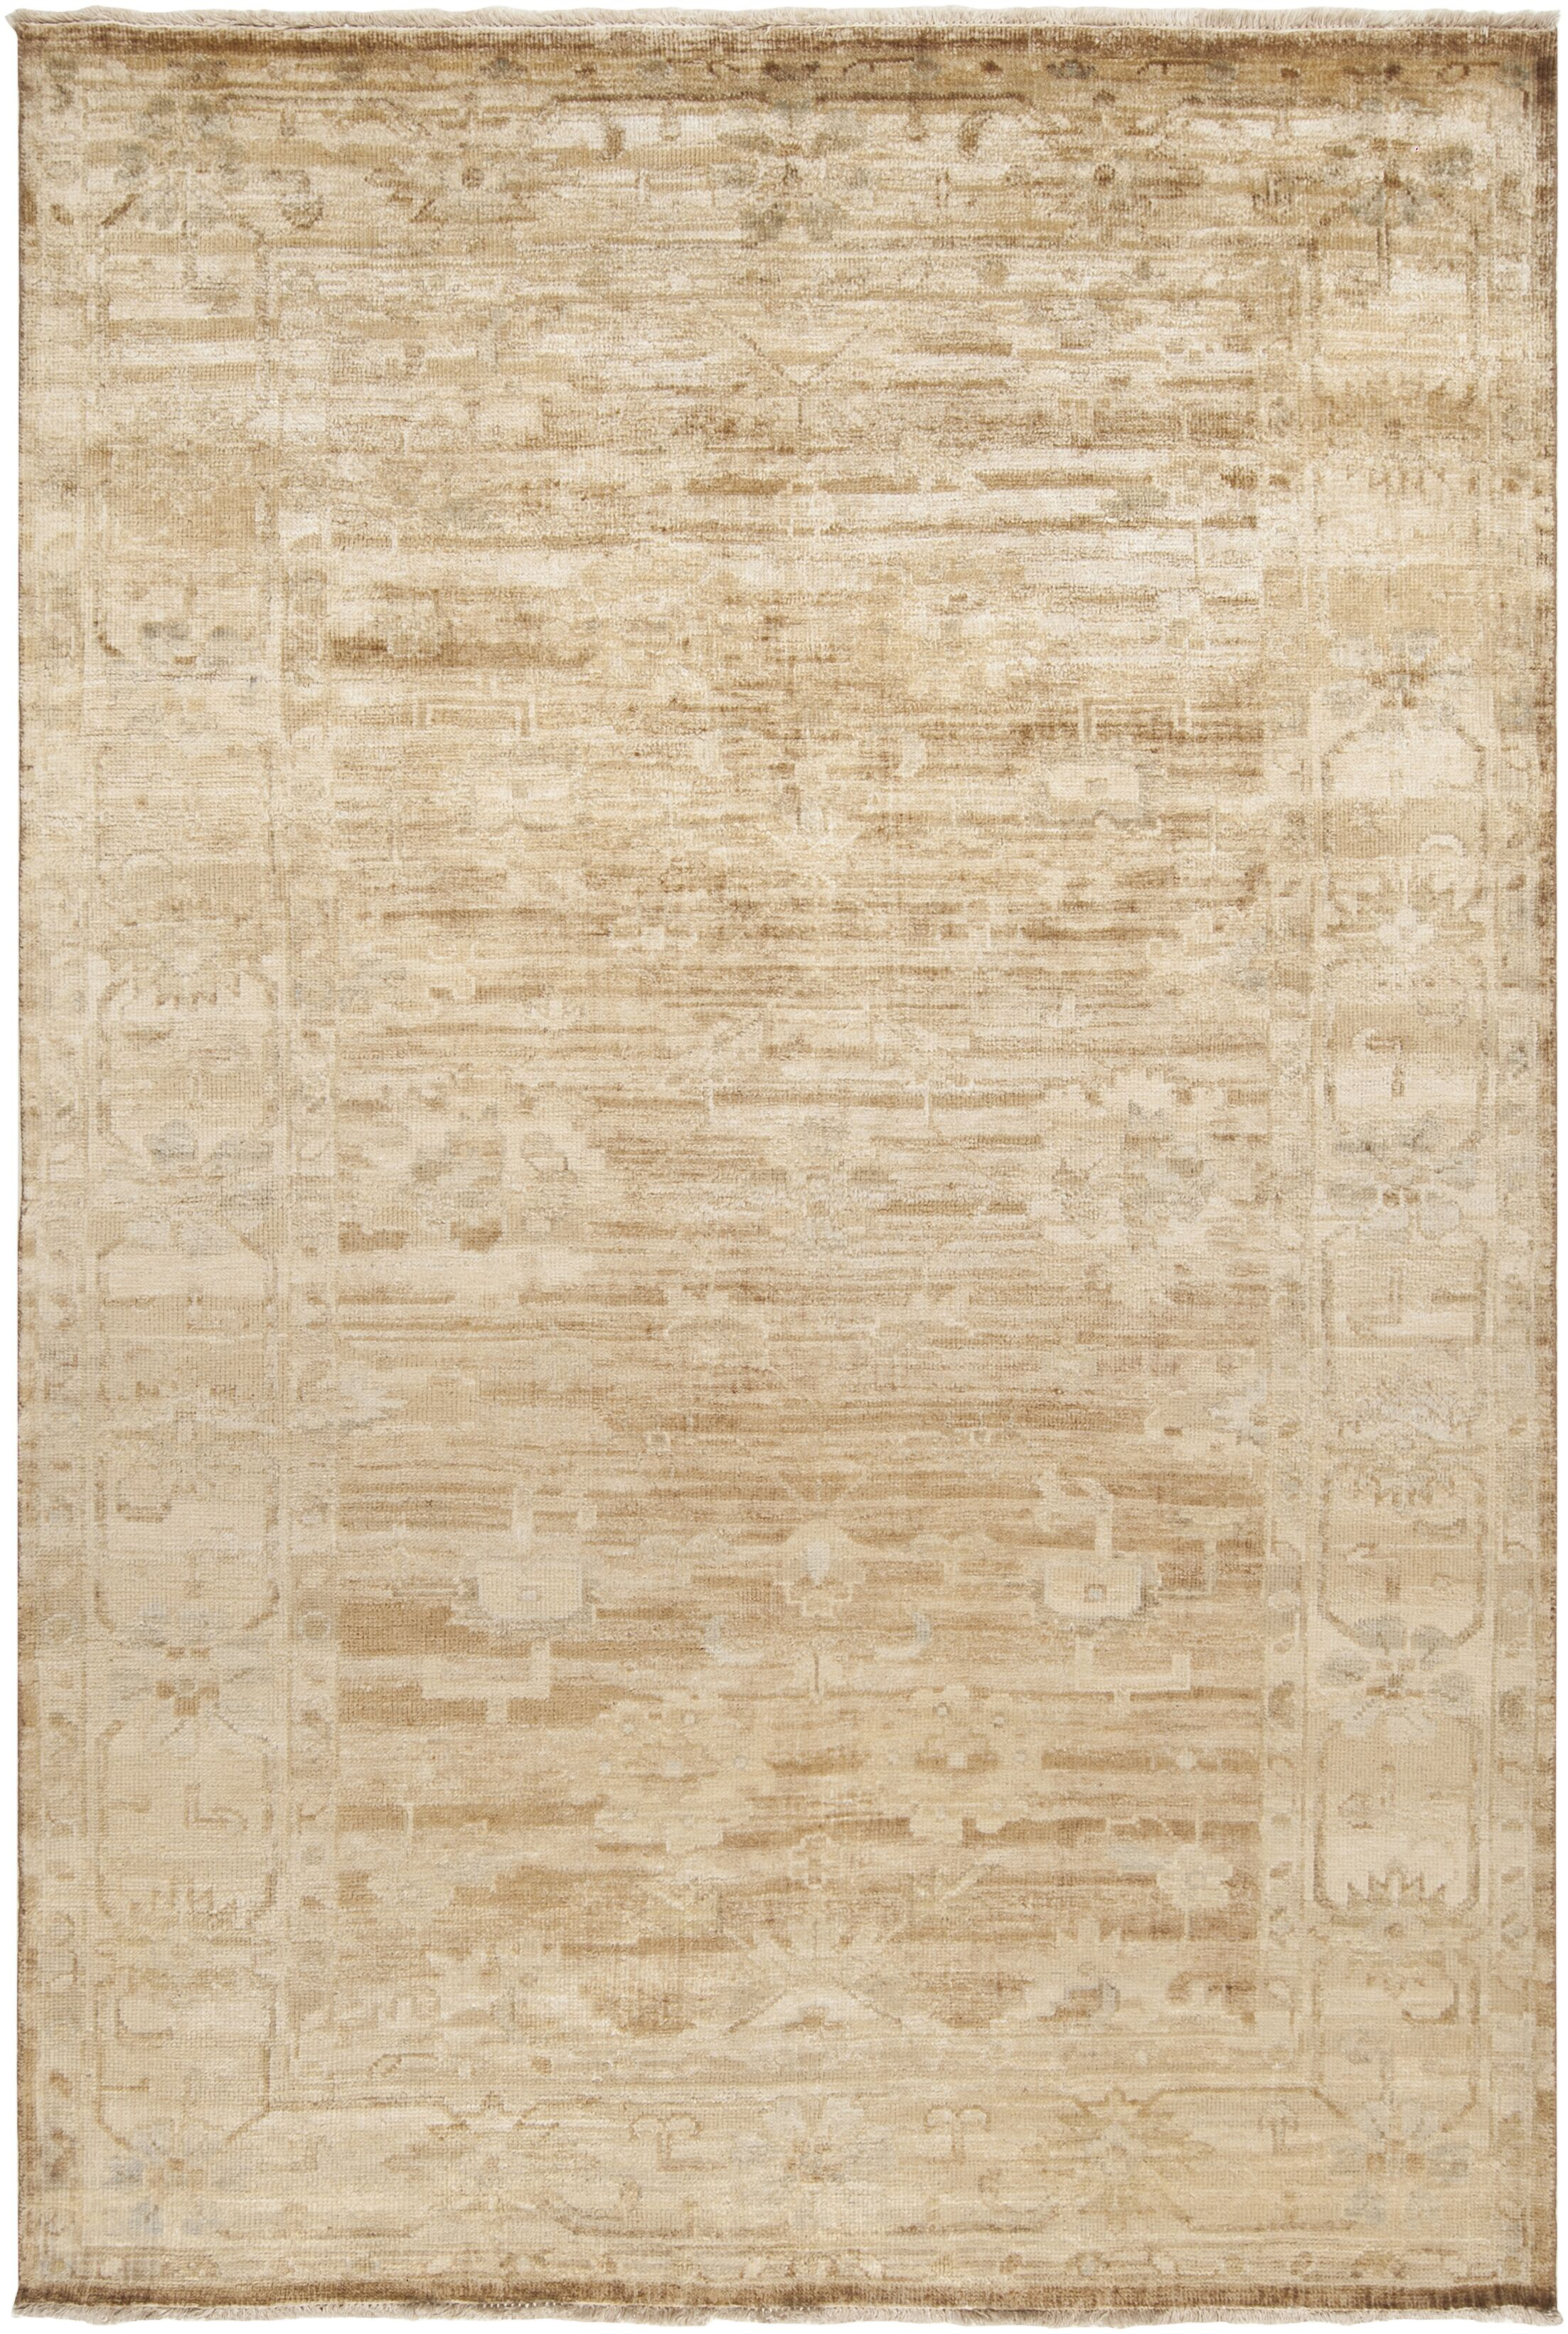 Talence Biscotti/Ivory Oriental Area Rug Rug Size: Rectangle 5'6